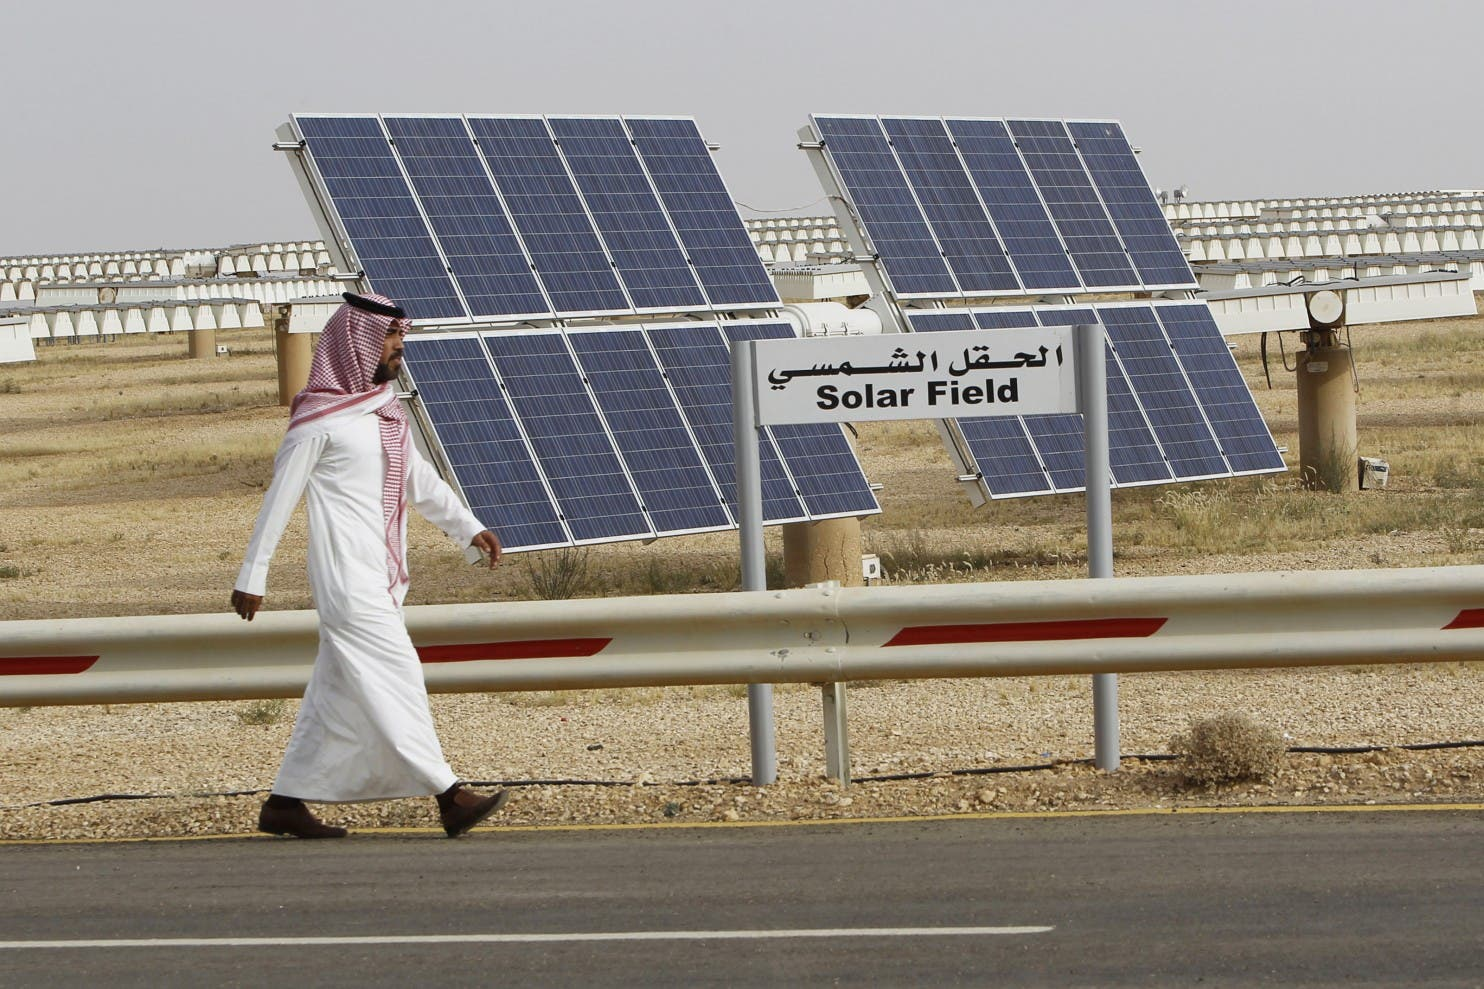 A Saudi man walks on a street past a field of solar panels at the King Abdulaziz city of Sciences and Technology, Al-Oyeynah Research Station. (File photo: Reuters)